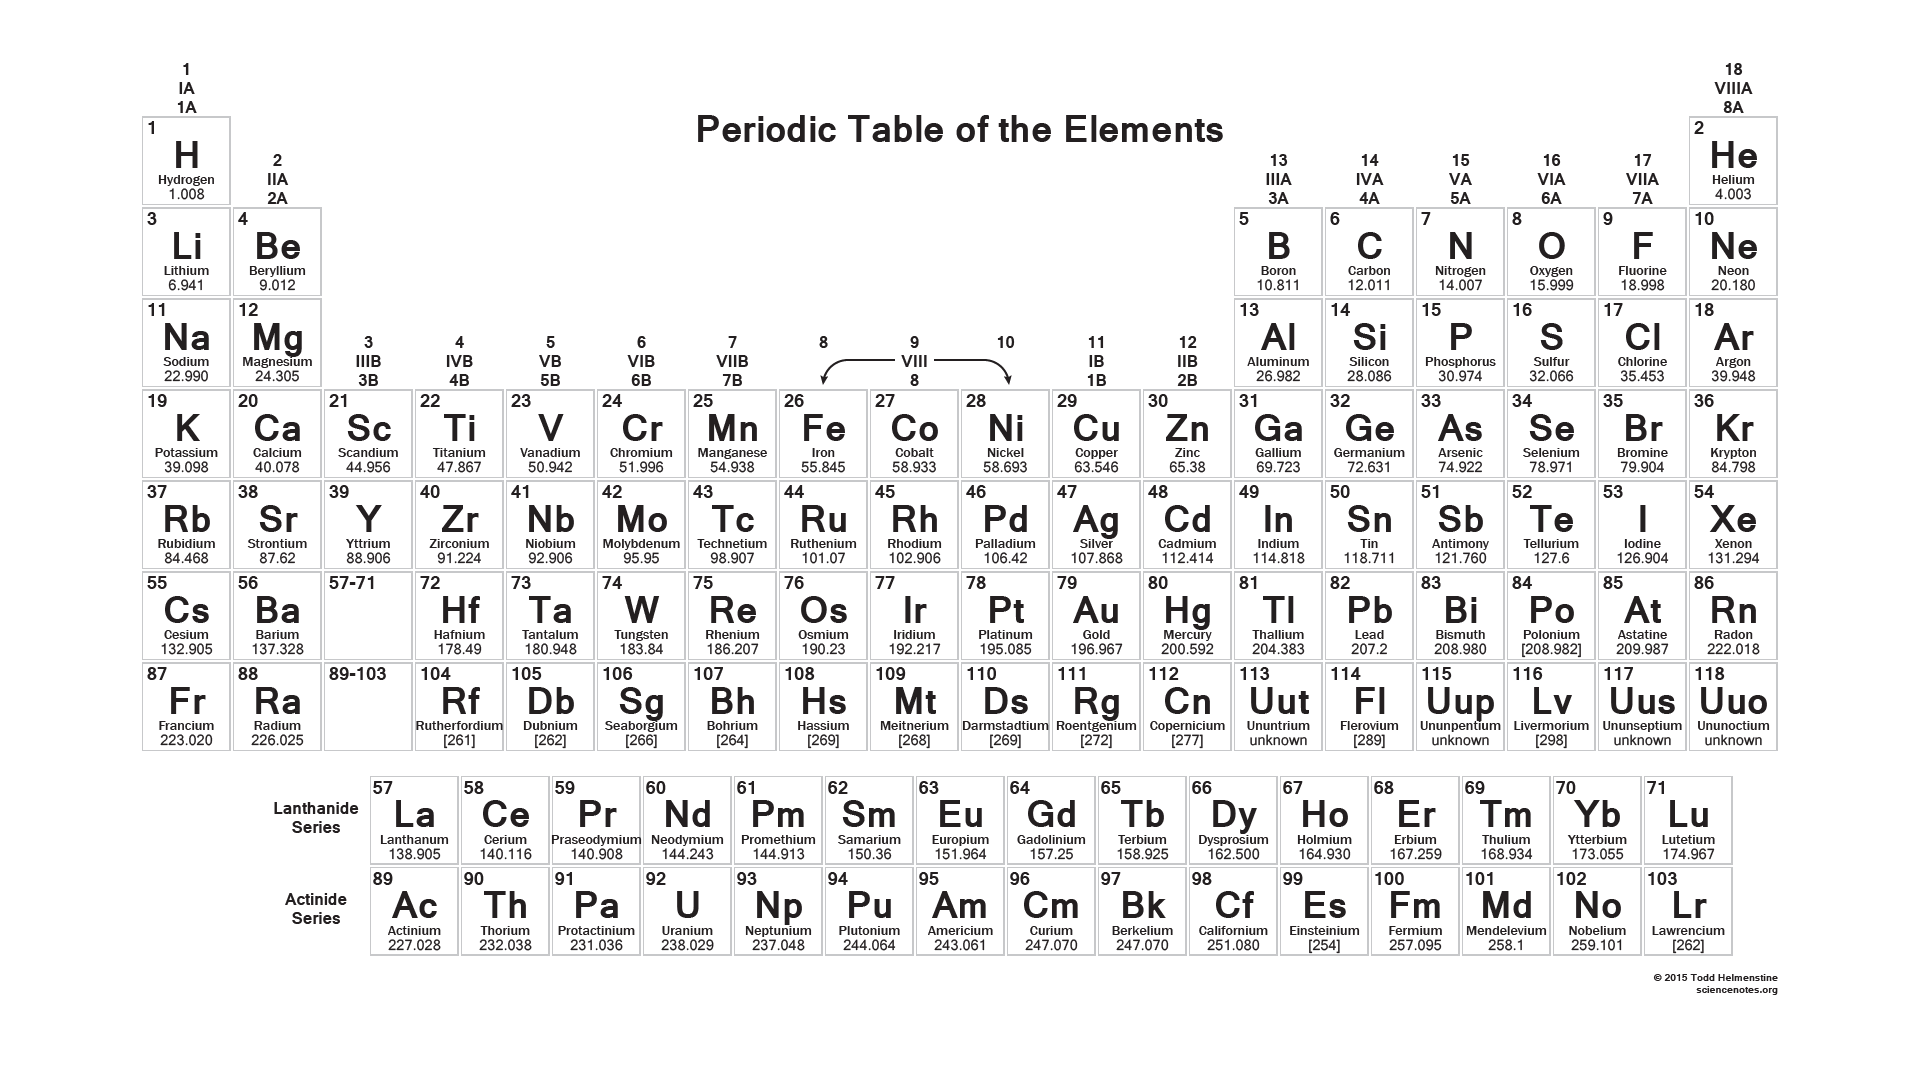 Printable periodic table 2015 2015 black and white periodic table gamestrikefo Choice Image